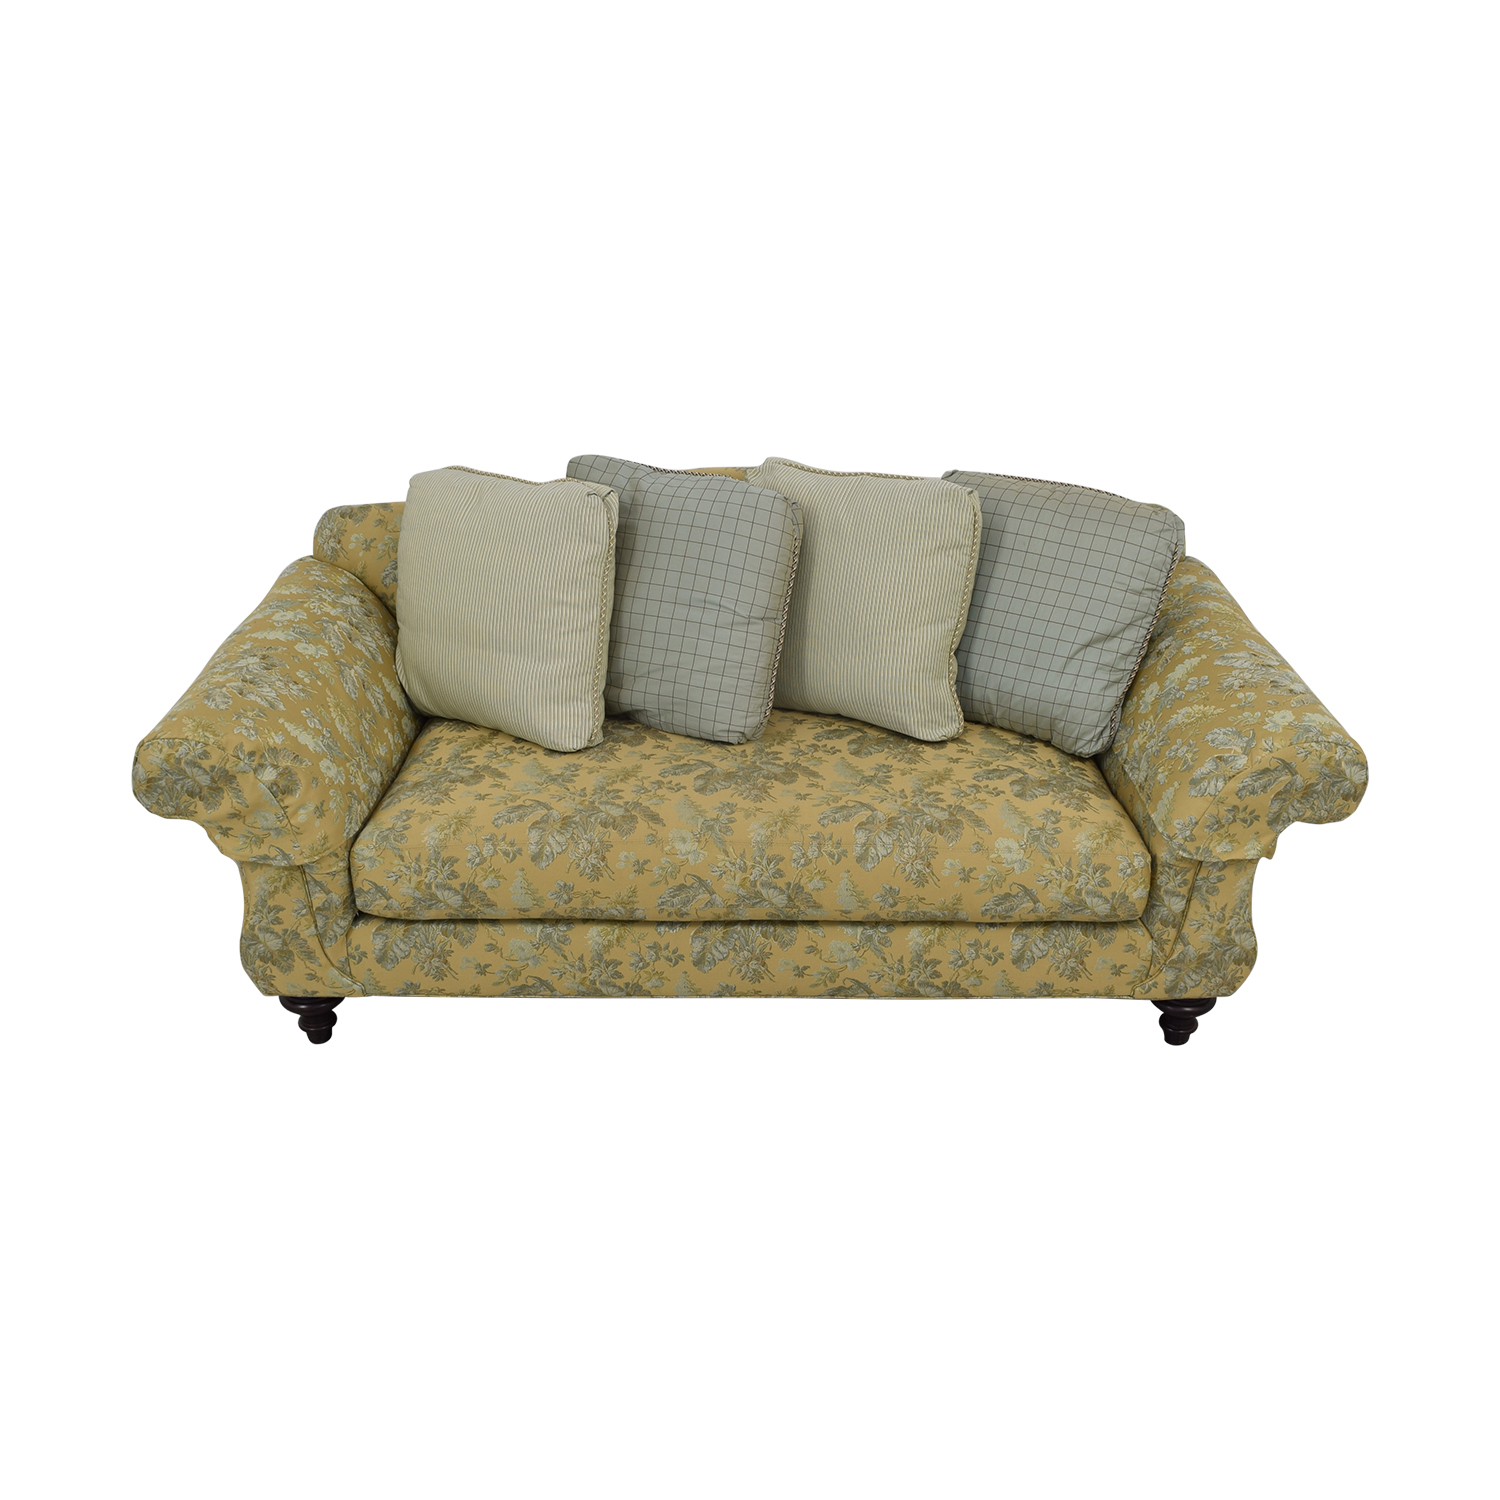 Vanguard Furniture Vanguard Furniture Sofa with Down-Filled Pillows on sale